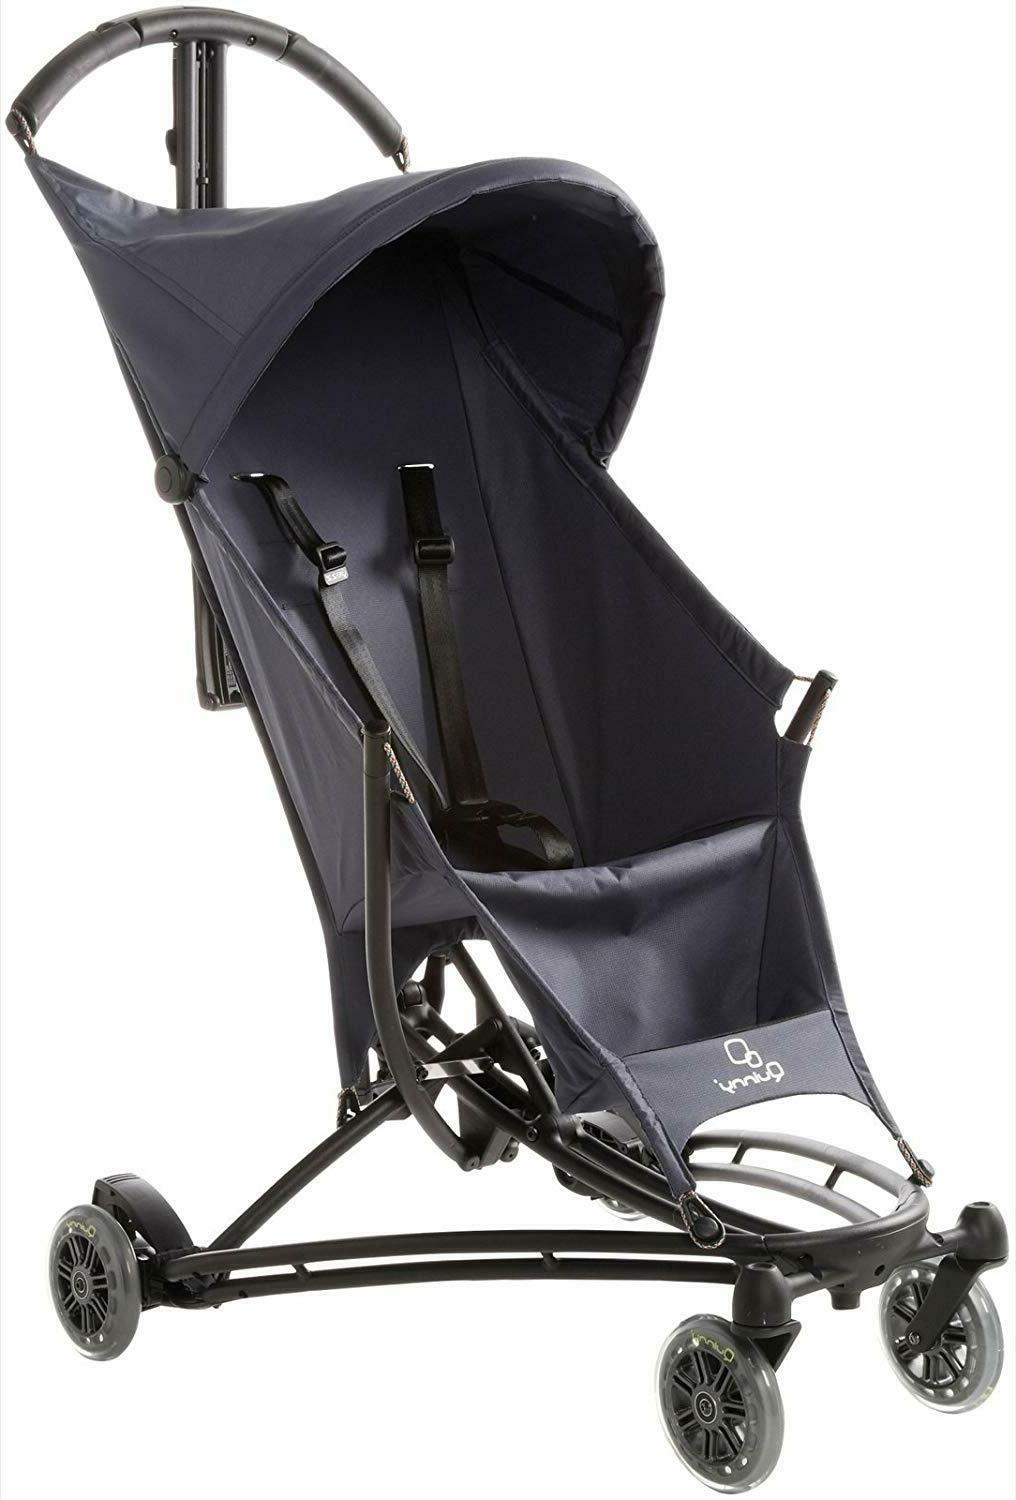 yezz stroller seat cover grey road new